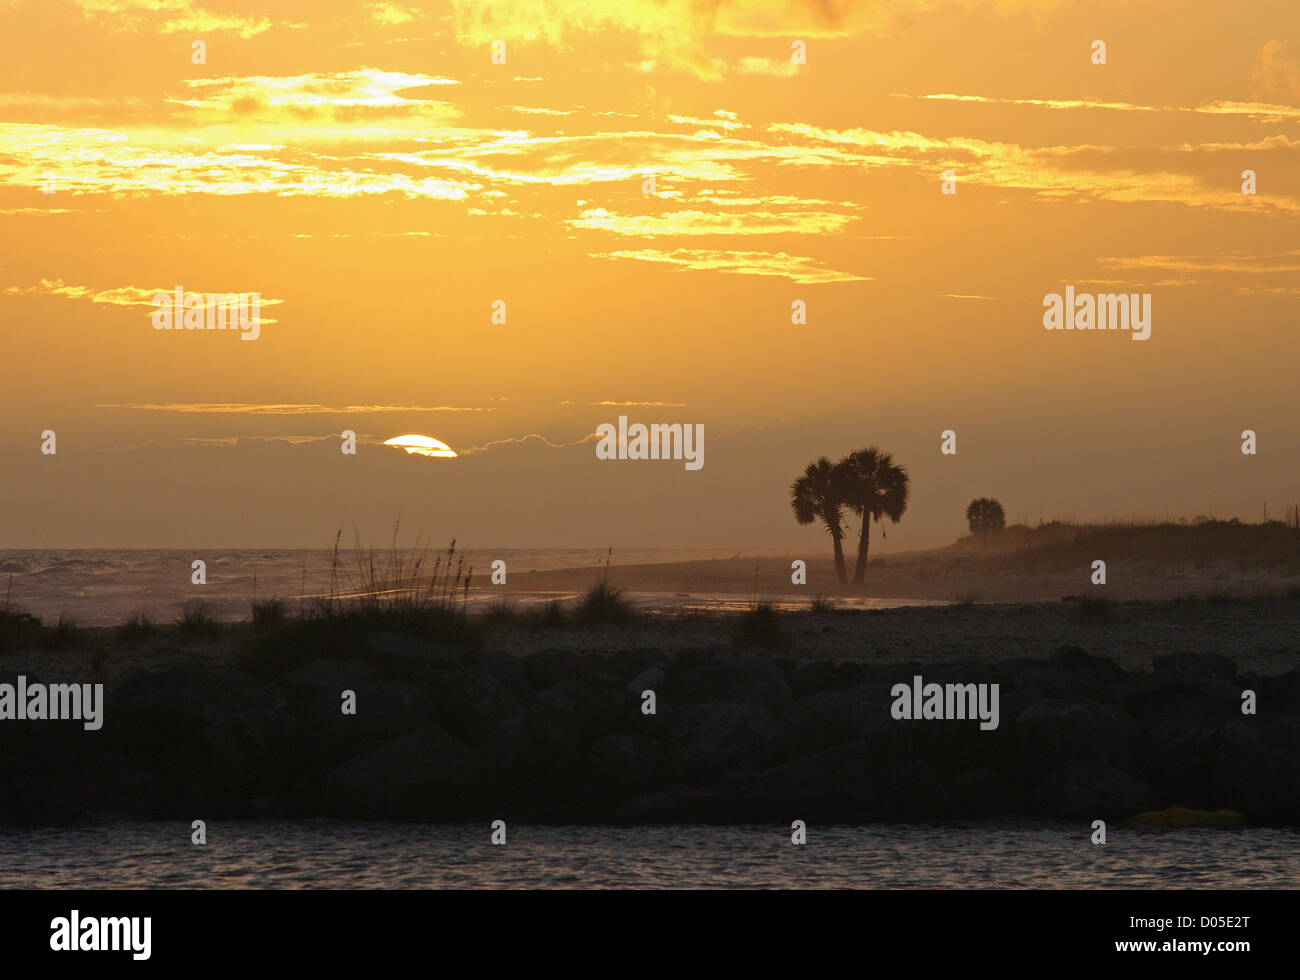 A tropical sunset on St. George Island in Florida's panhandle. - Stock Image